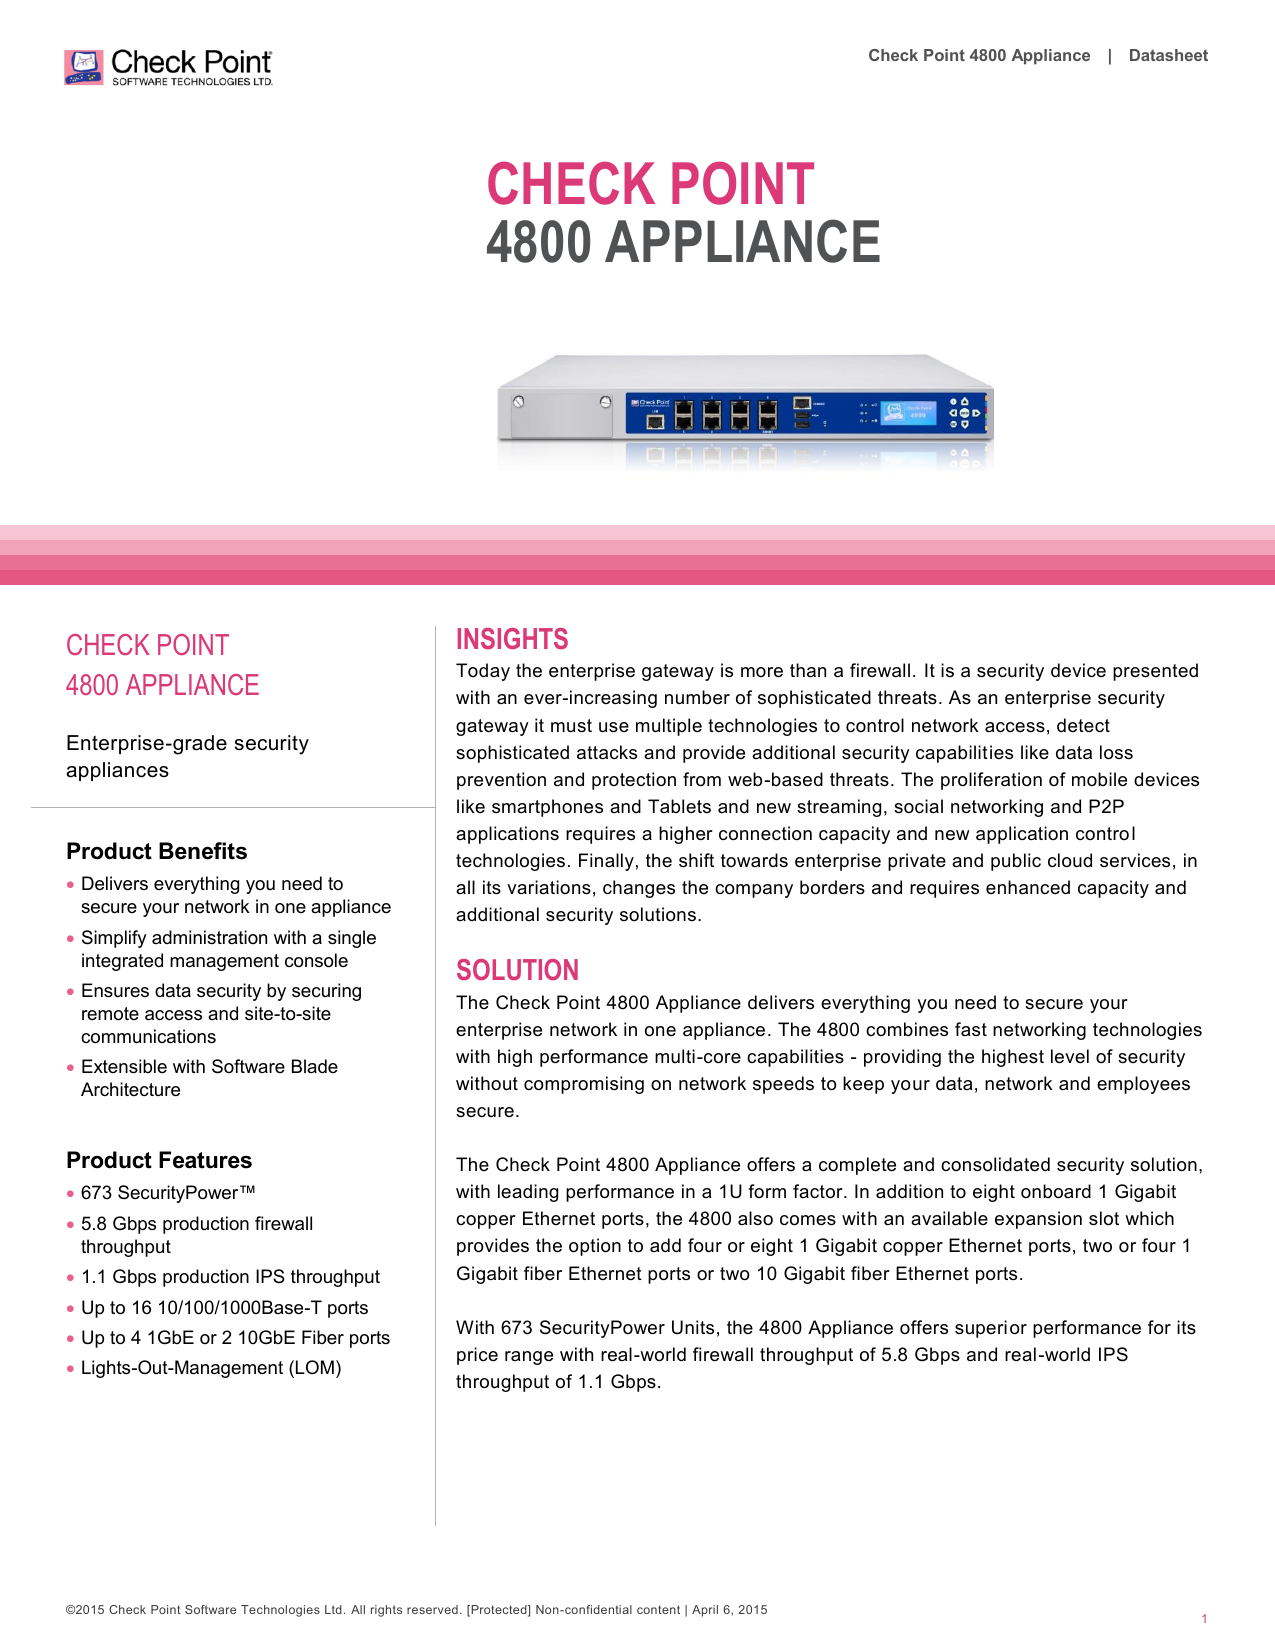 4800 Appliance Datasheet - Check Point Software Technologies